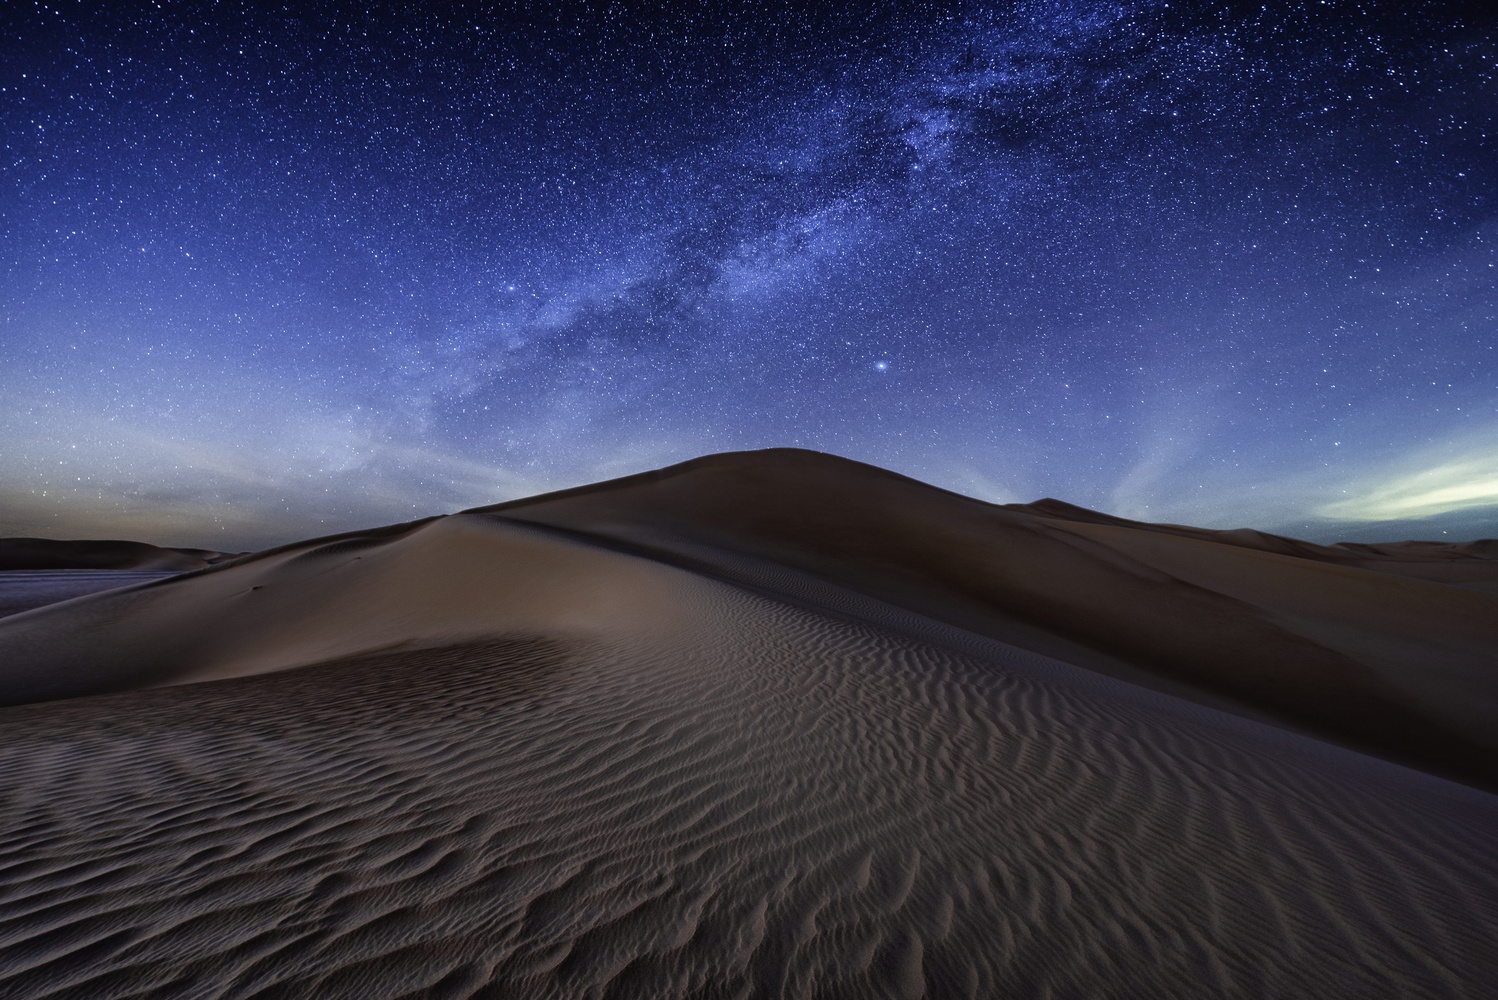 Stars and Dunes by Ali Salem